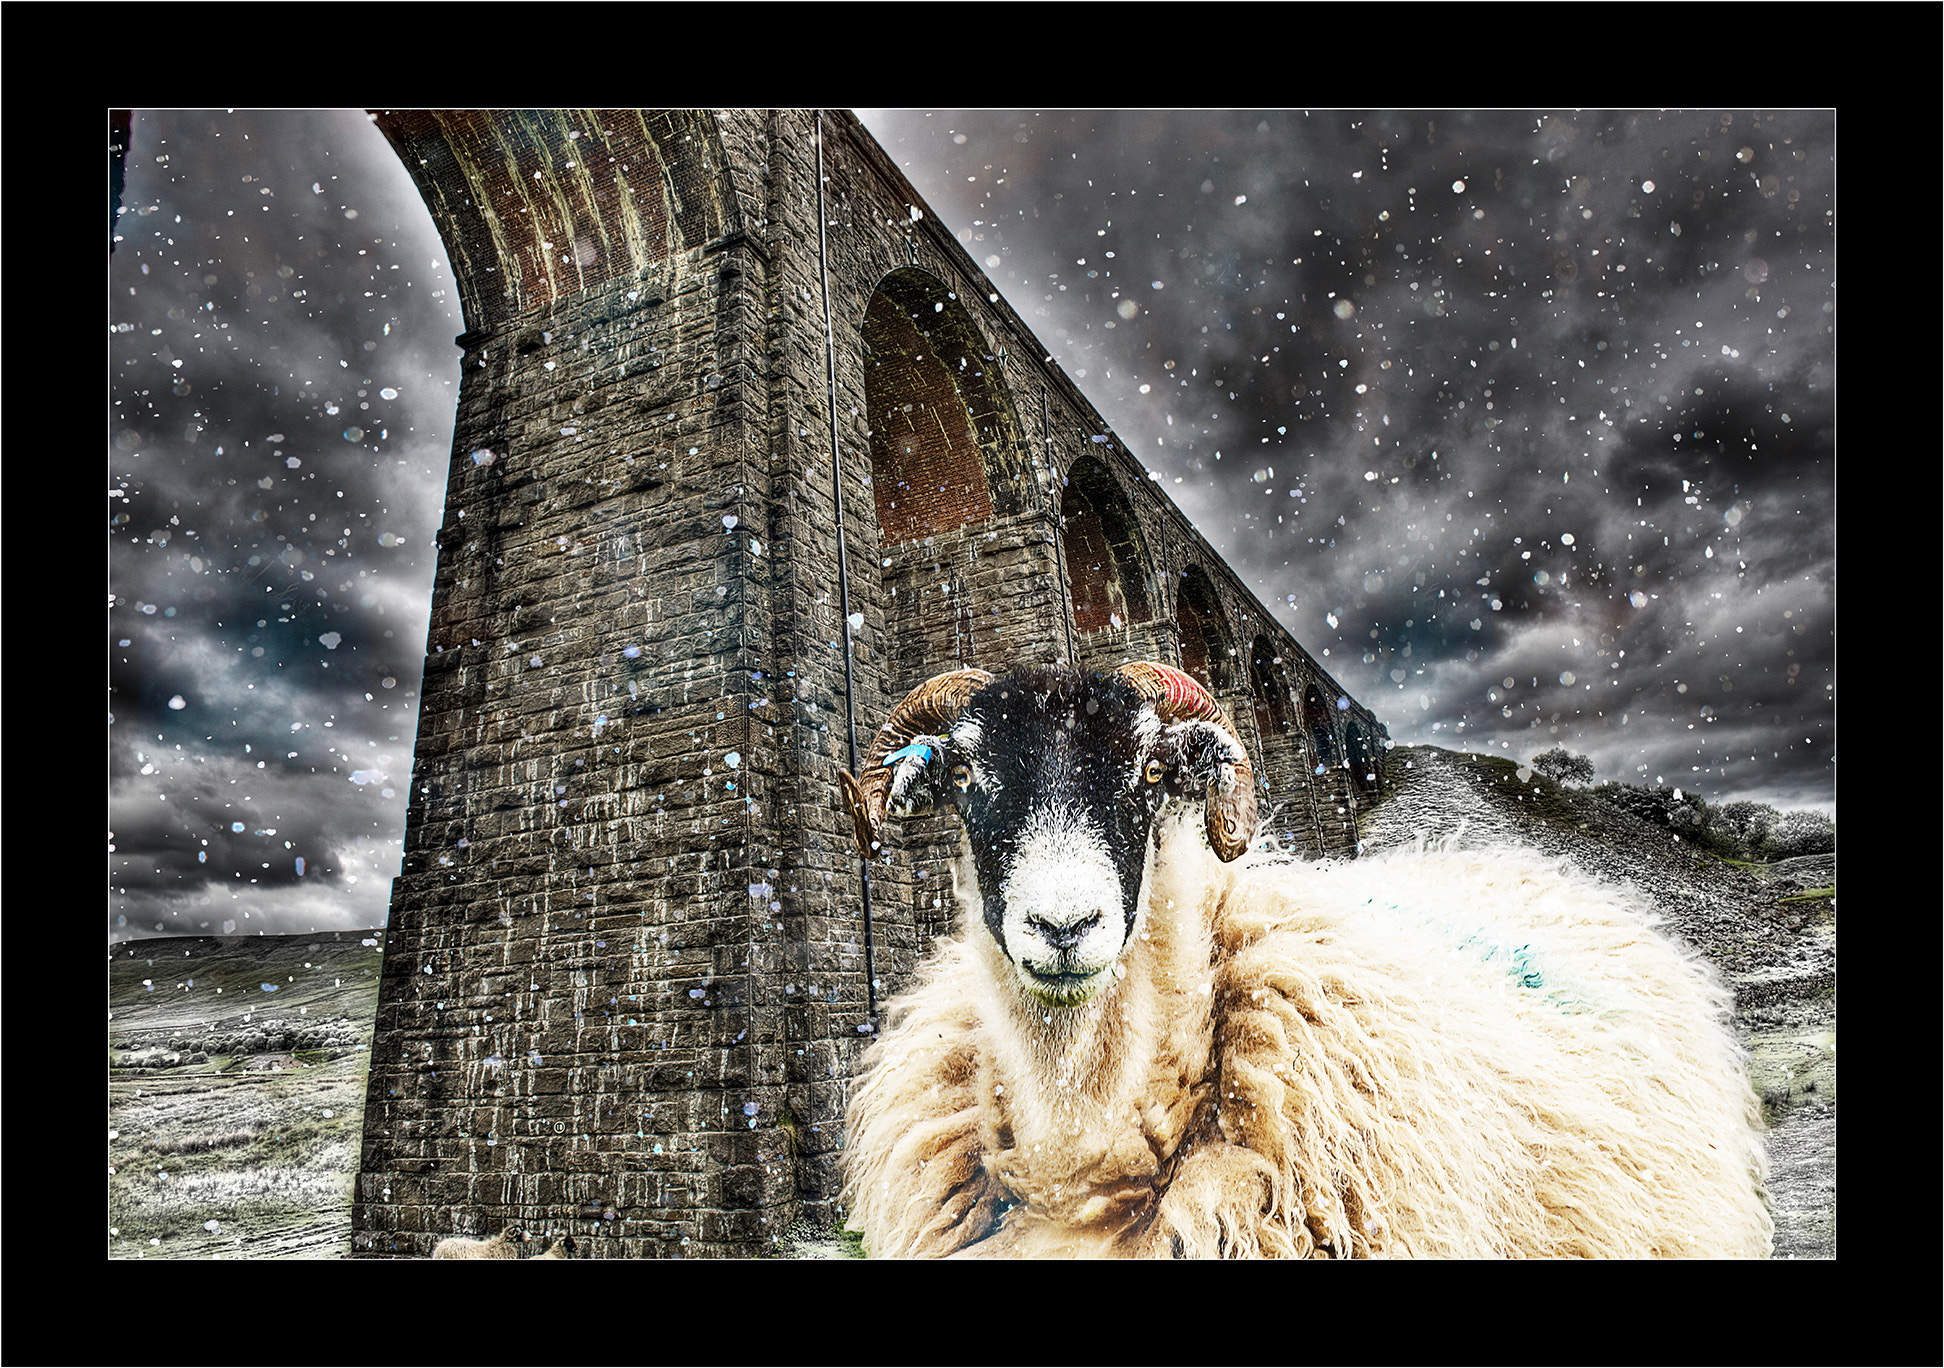 Photograph Snowy Sheep by Kevin Sharpe on 500px